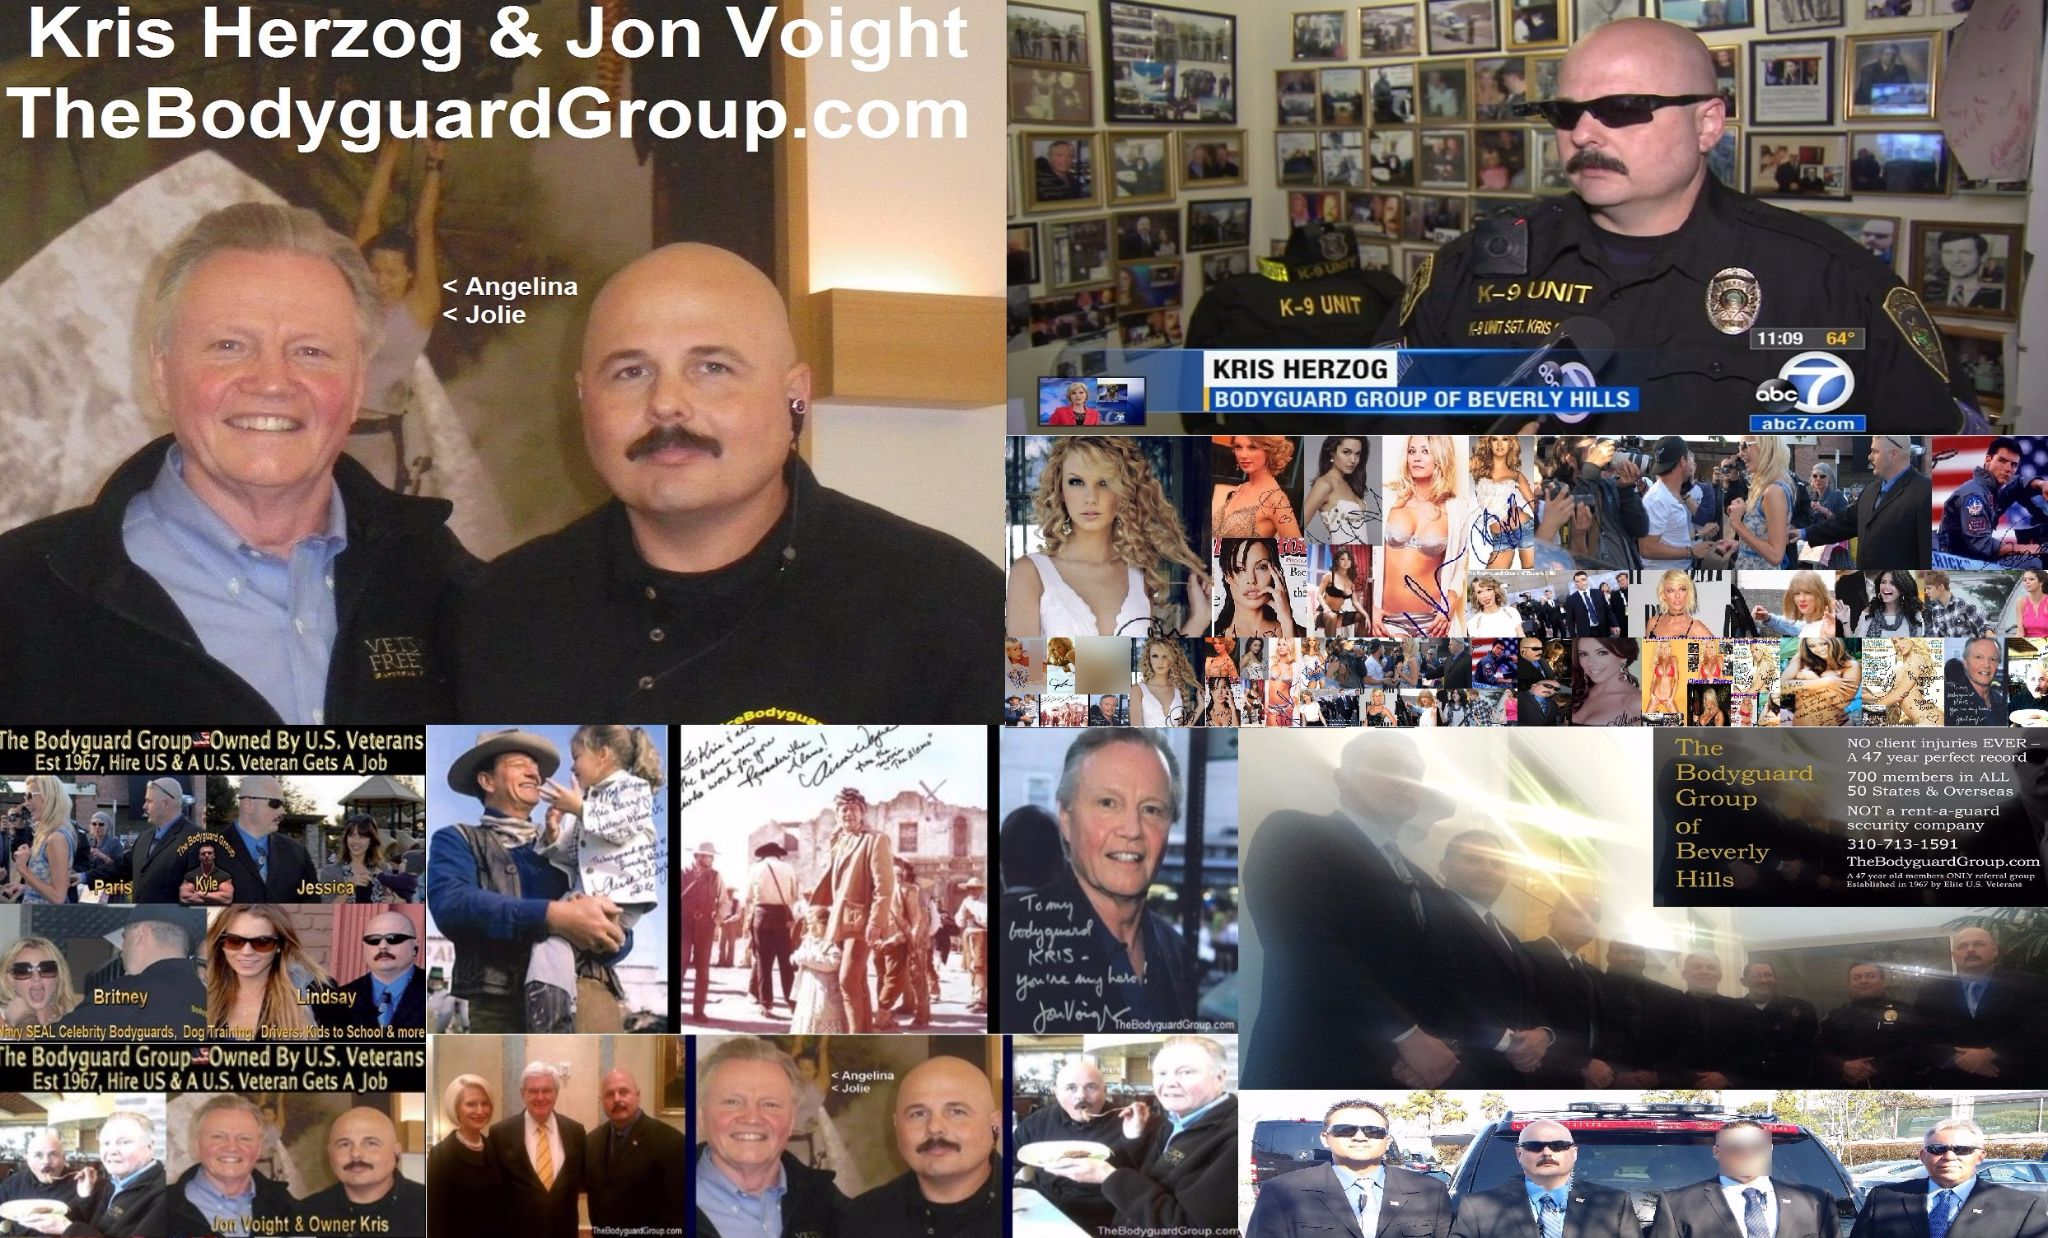 Famous celebrity bodyguard Kris Herzog and Jon Voight, famous celebrity bodyguard kris herzog of the bodyguard group of beverly hills